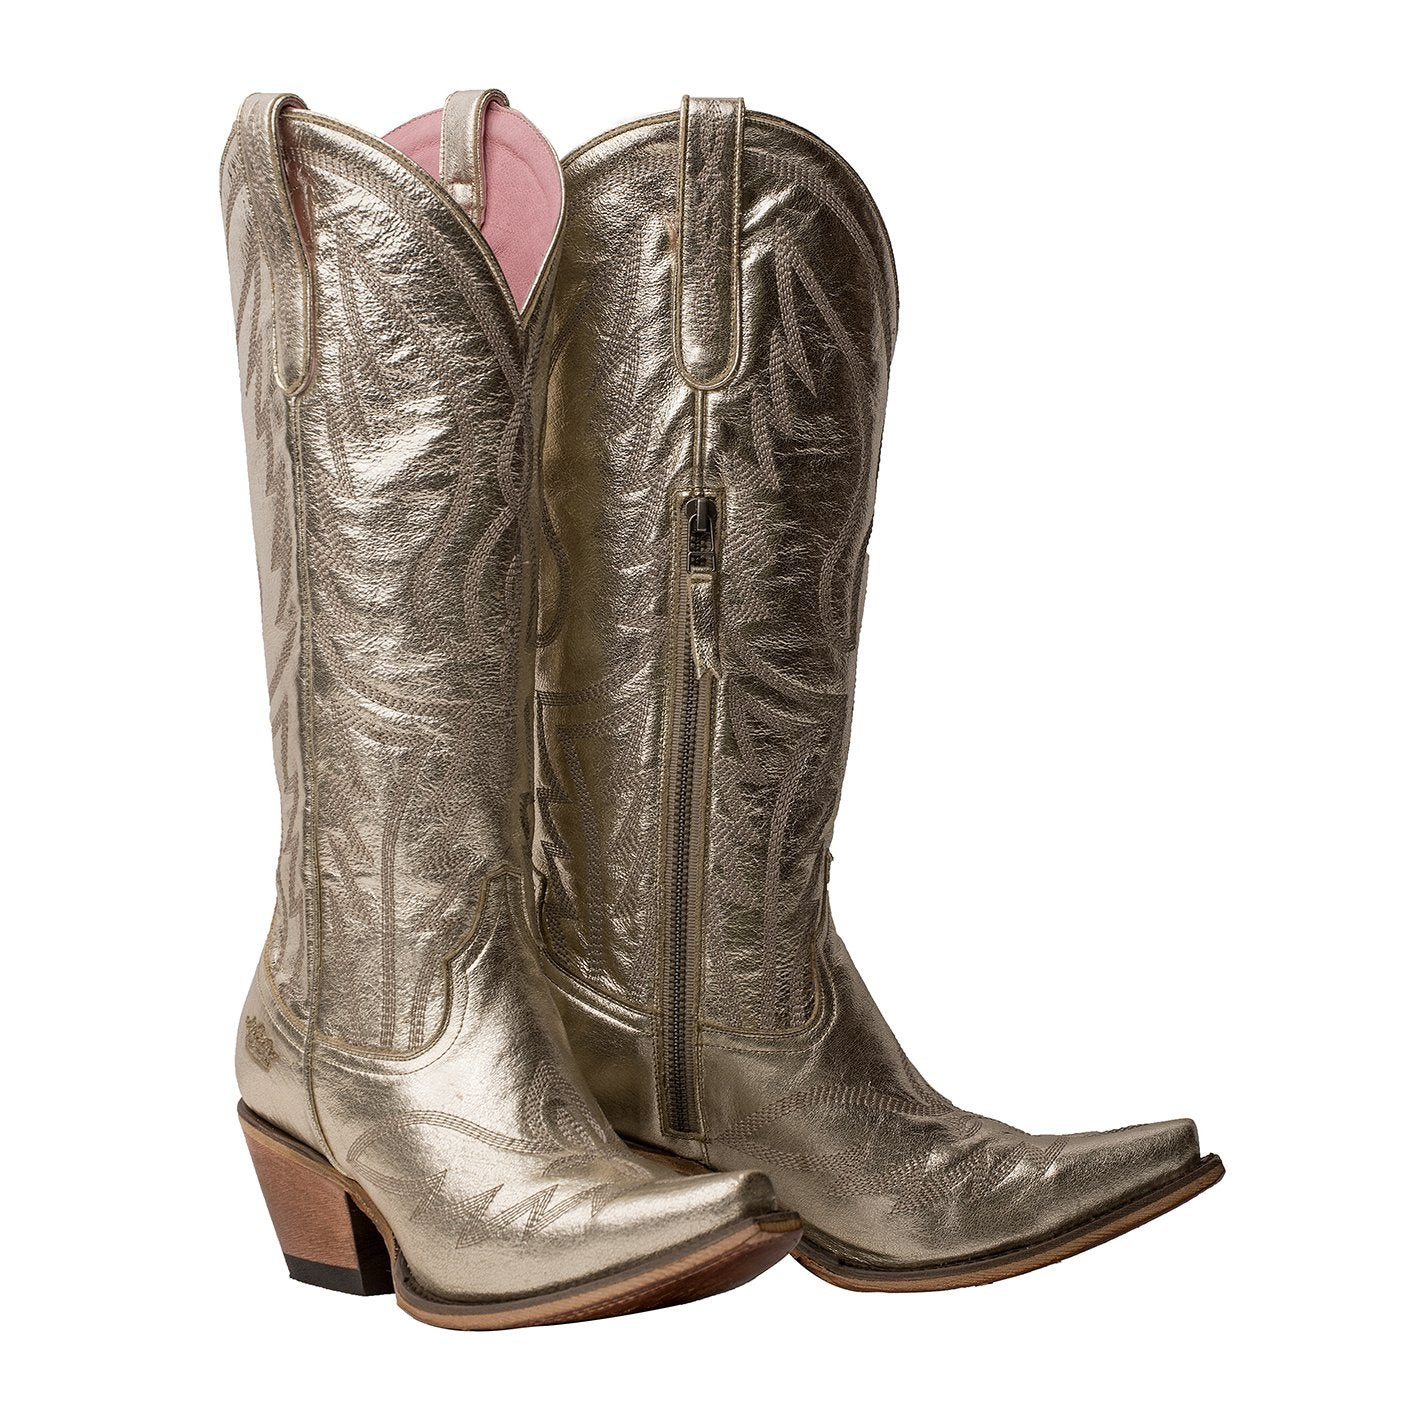 Junk Gypsy Champagne Metallic Nighthawk Women's Boot